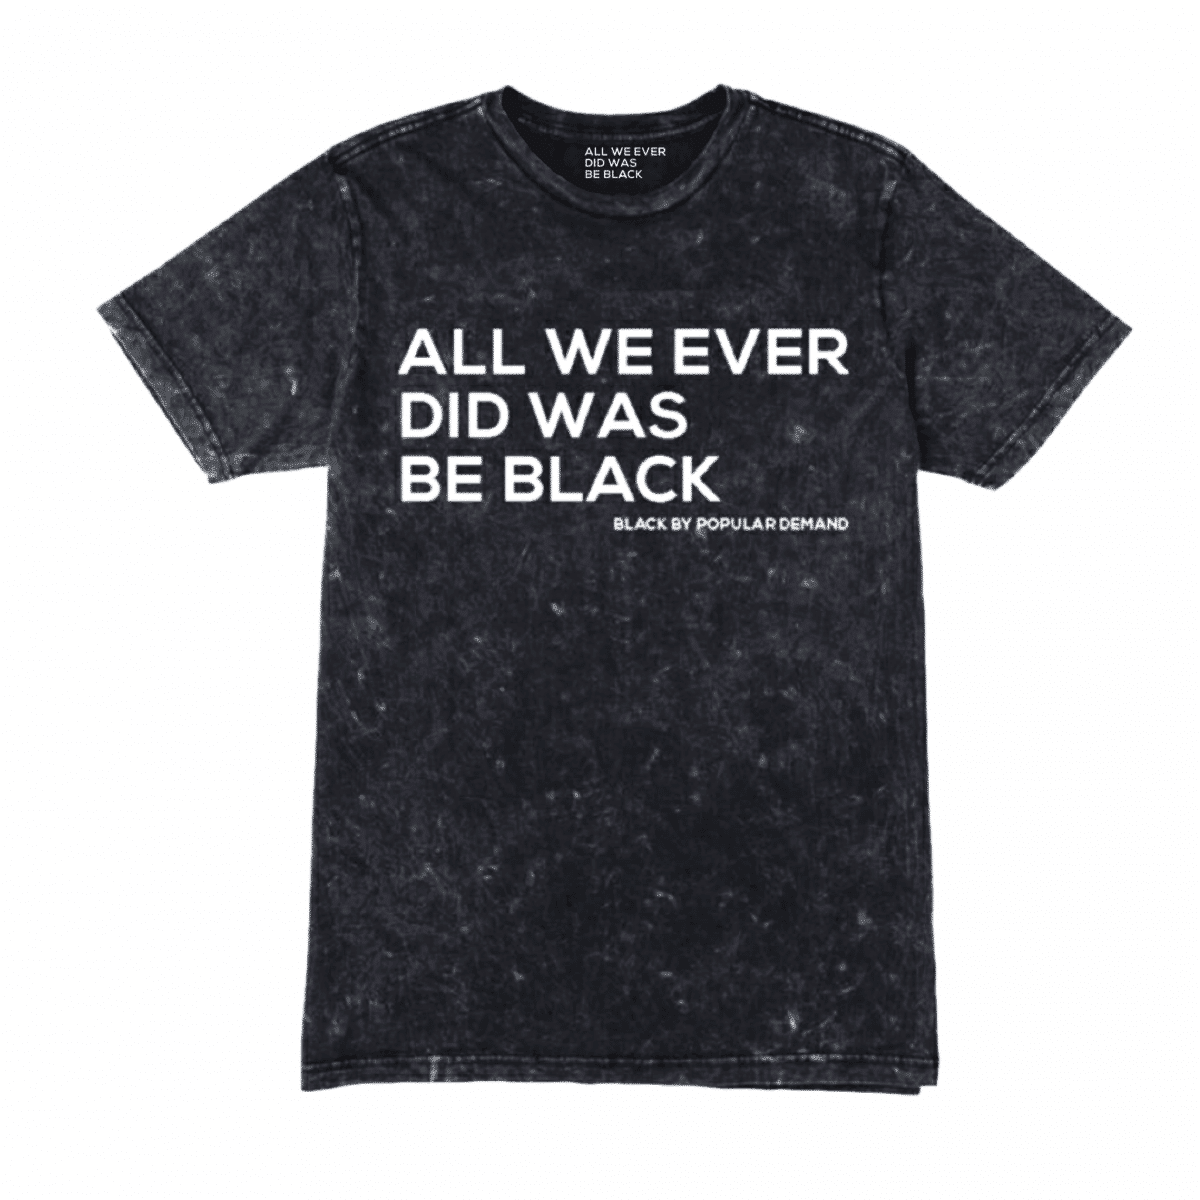 ALL WE EVER DID WAS BE BLACK® Black Mineral Wash Unisex Shirt HGC Apparel